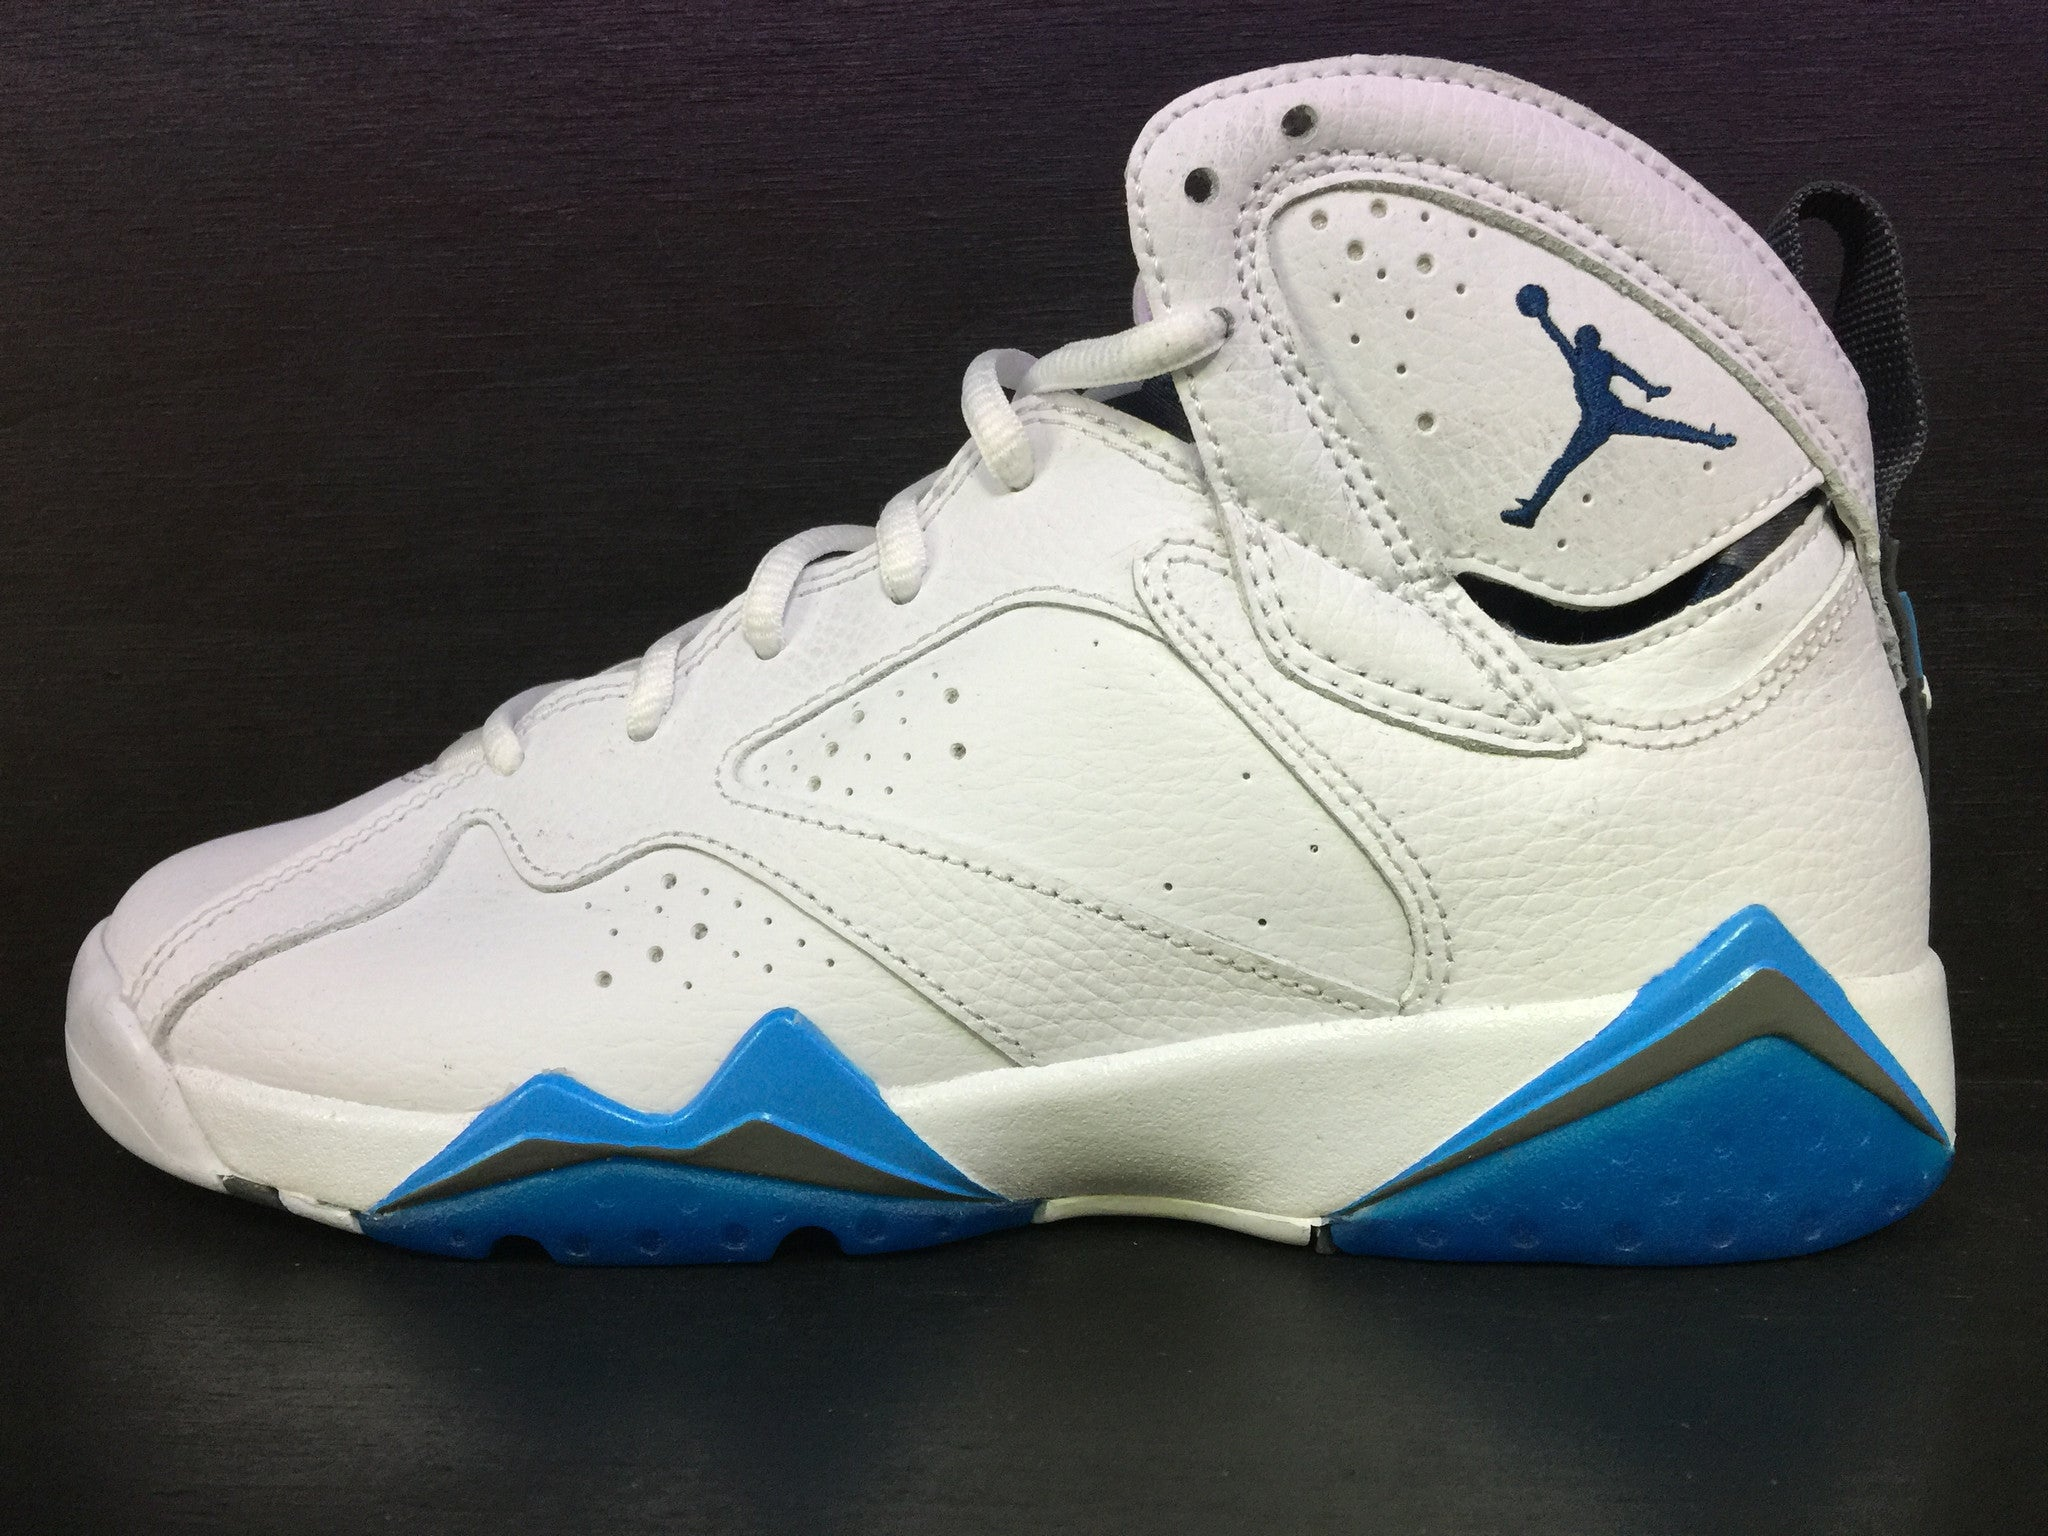 Air Jordan 7 Retro 'French Blue' Grade School